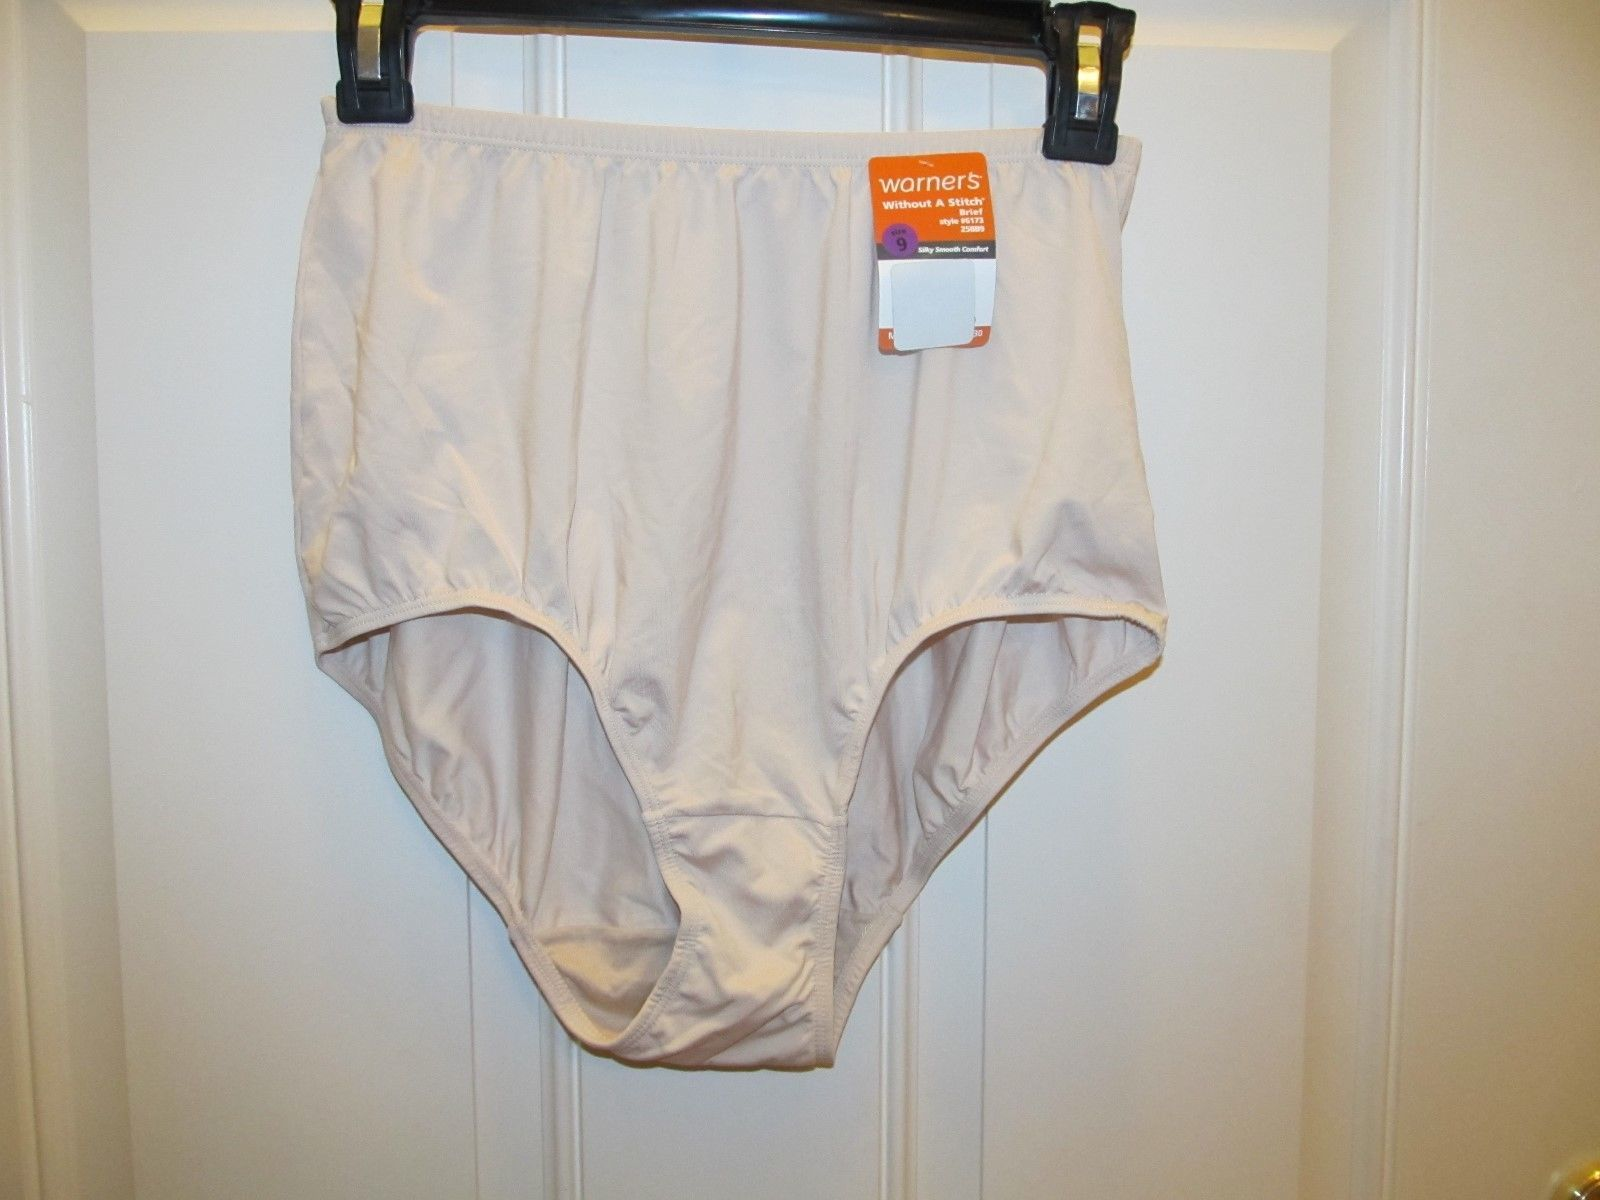 f3cb2676851f Warner's Without A Stitch Brief Panty Light and 50 similar items